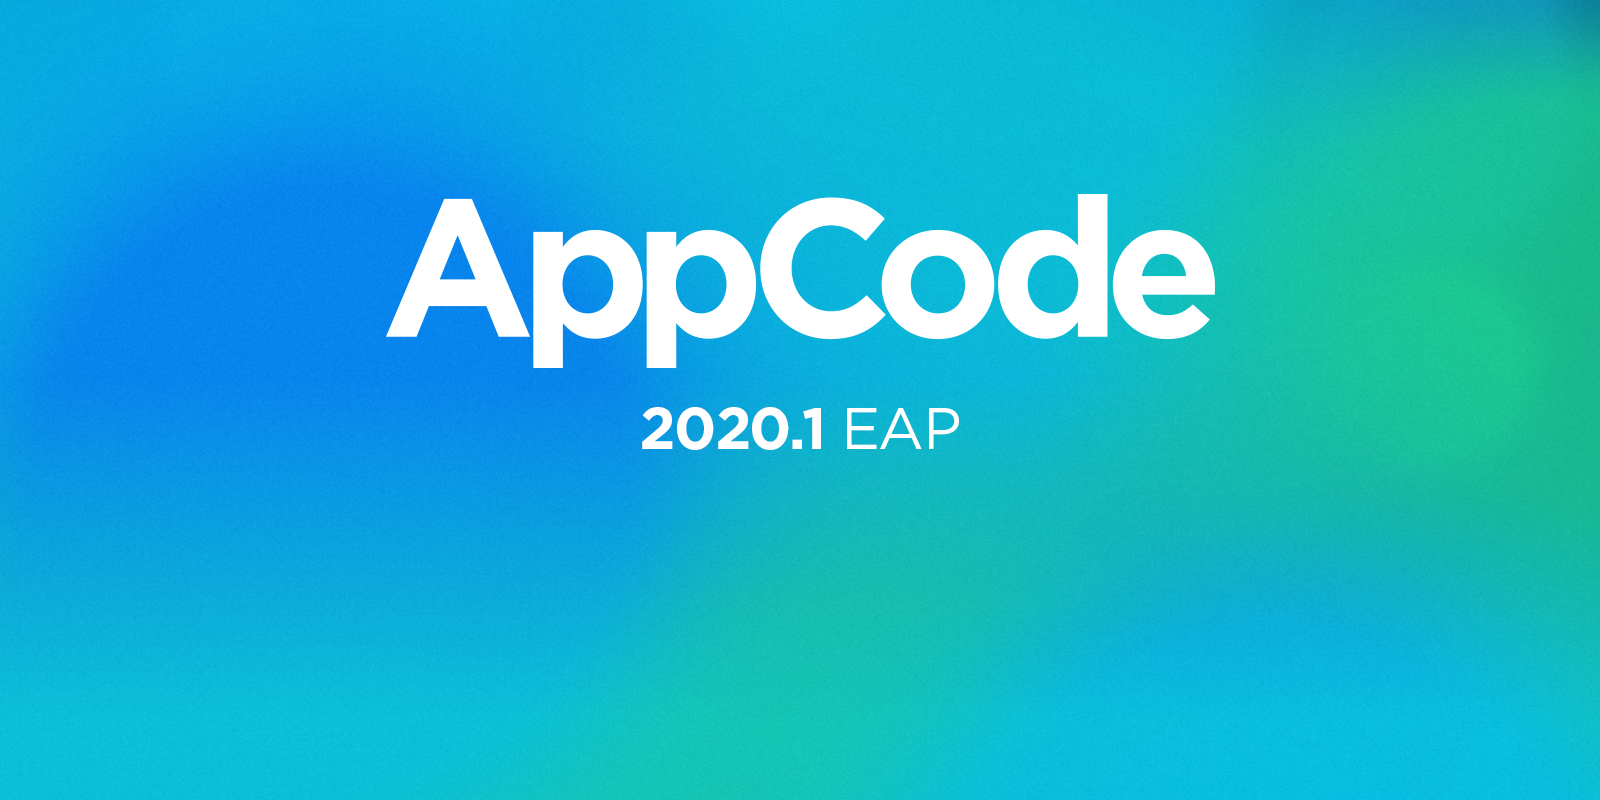 AppCode 2020.1 EAP splash